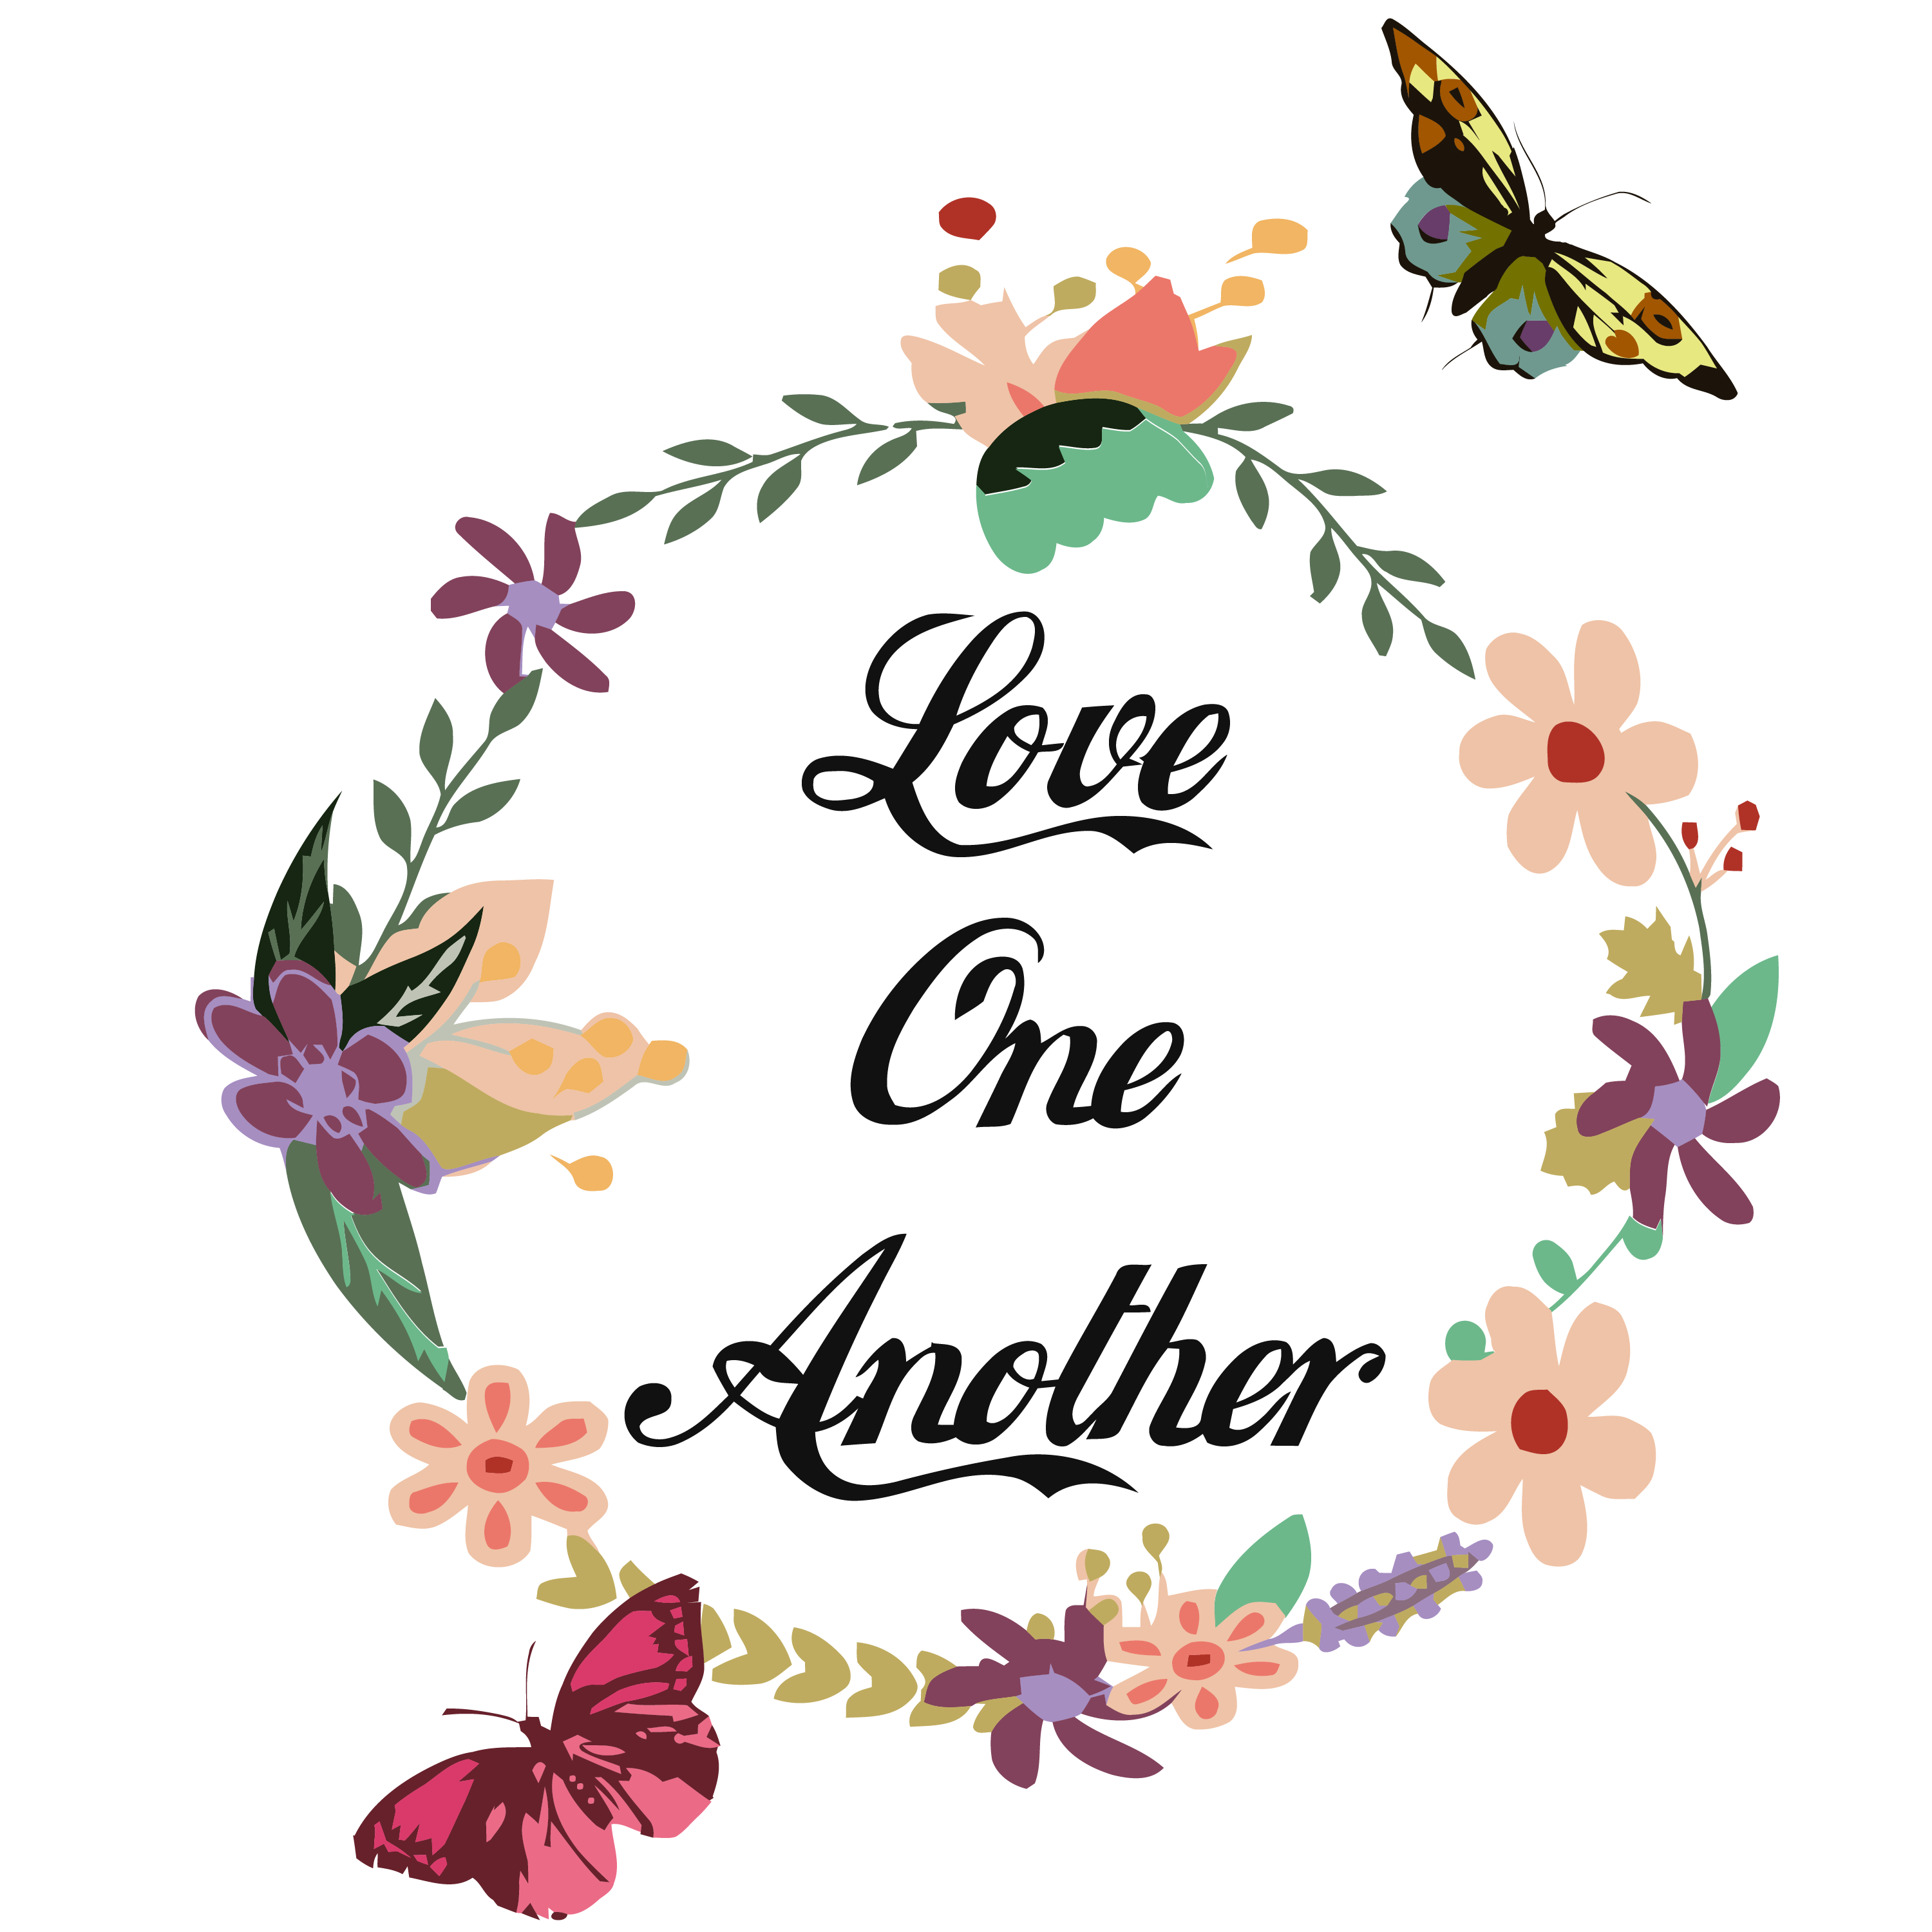 Download Love one another SVG, faith hope love, faith svg, And I ...